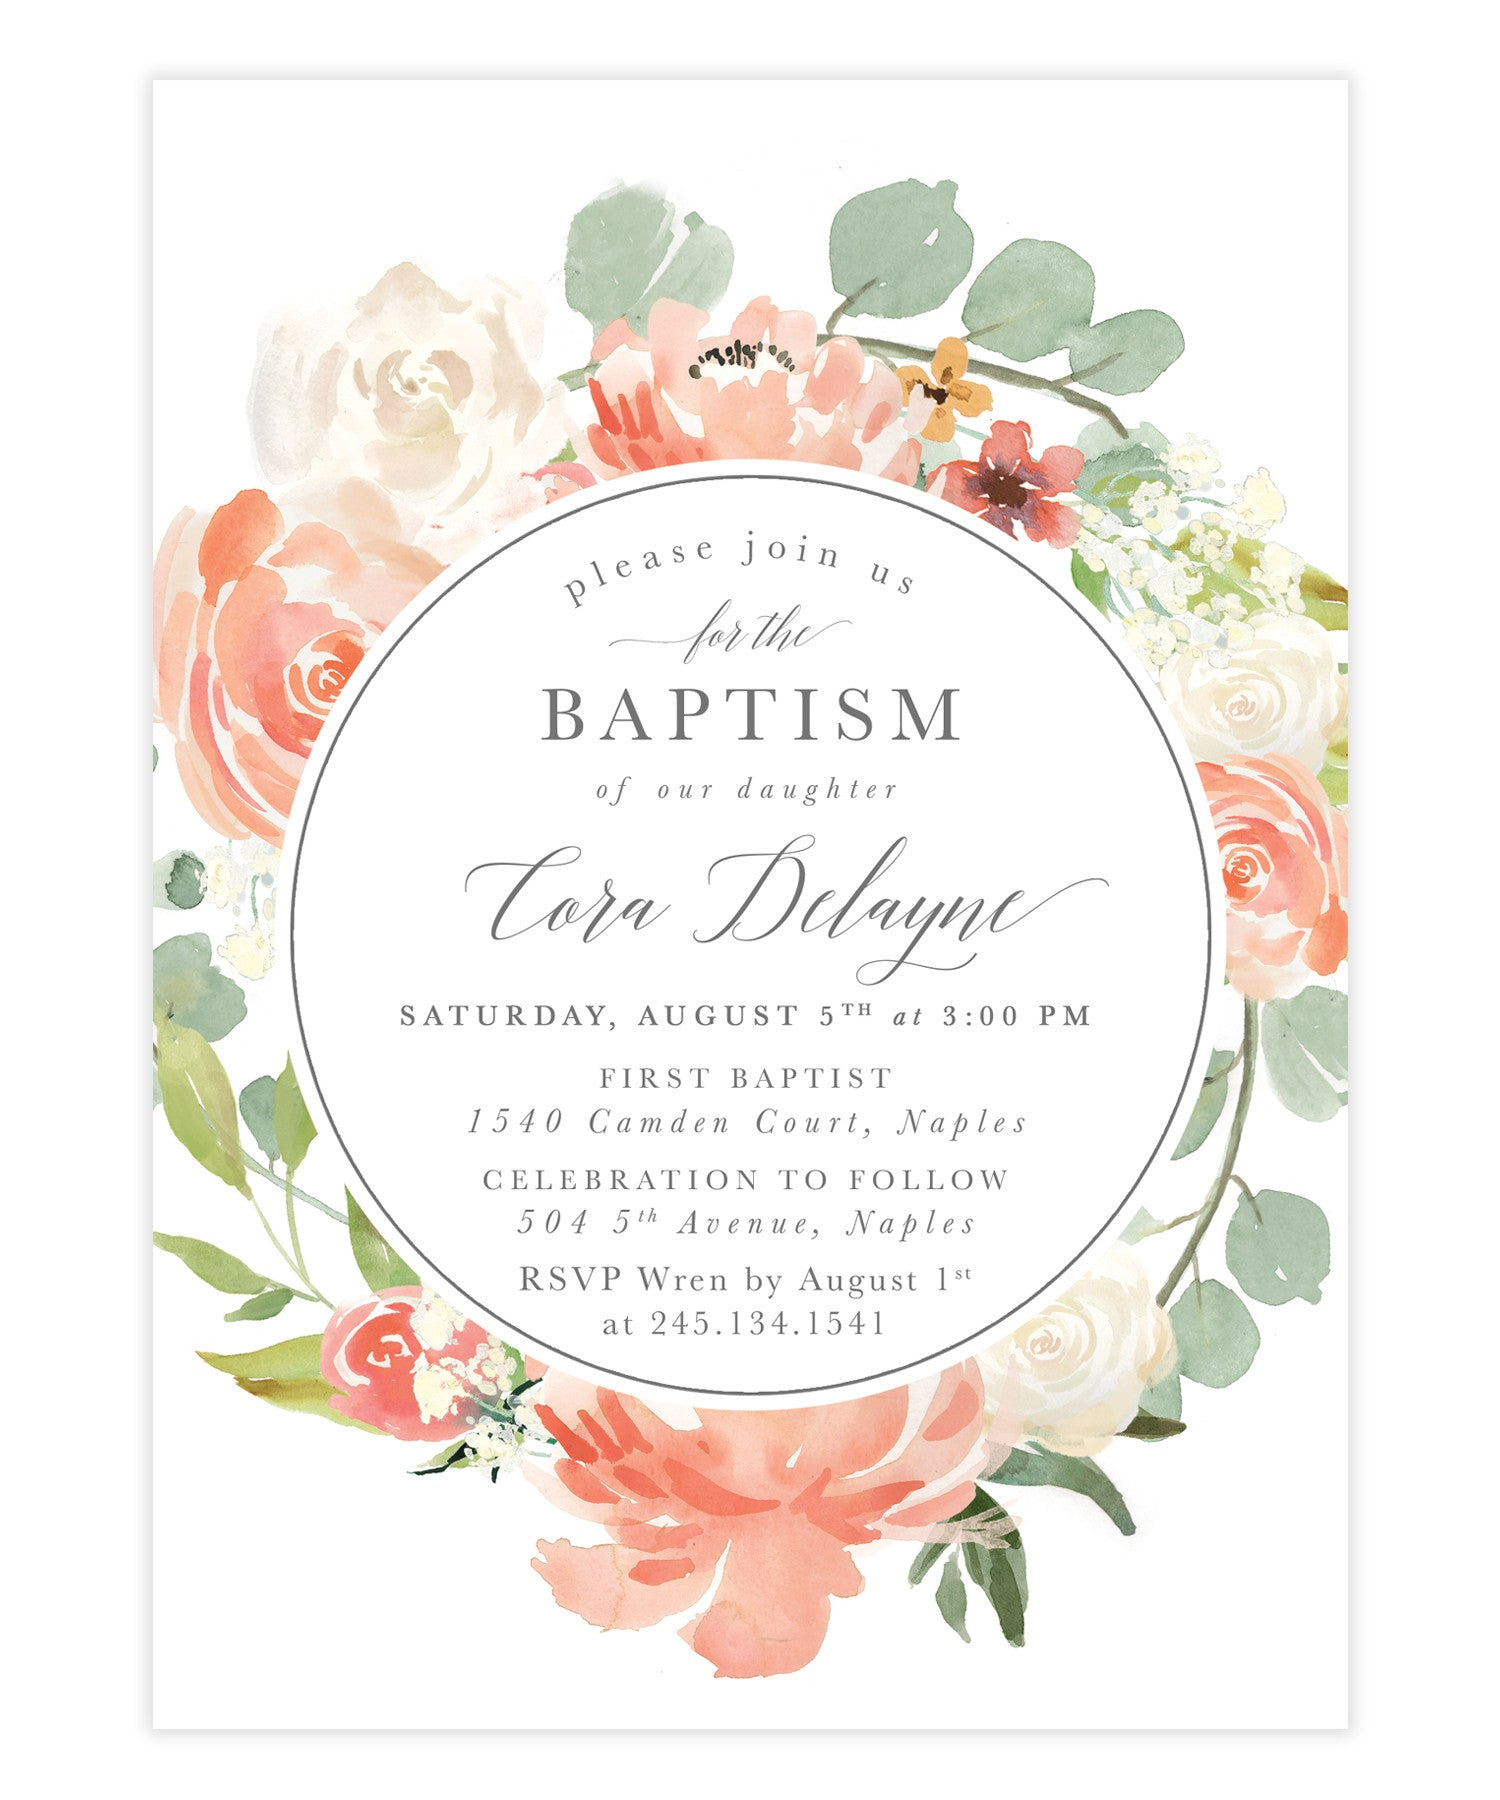 Cora Baptism Invitation for a Girl Garden Florals Greenery Sea